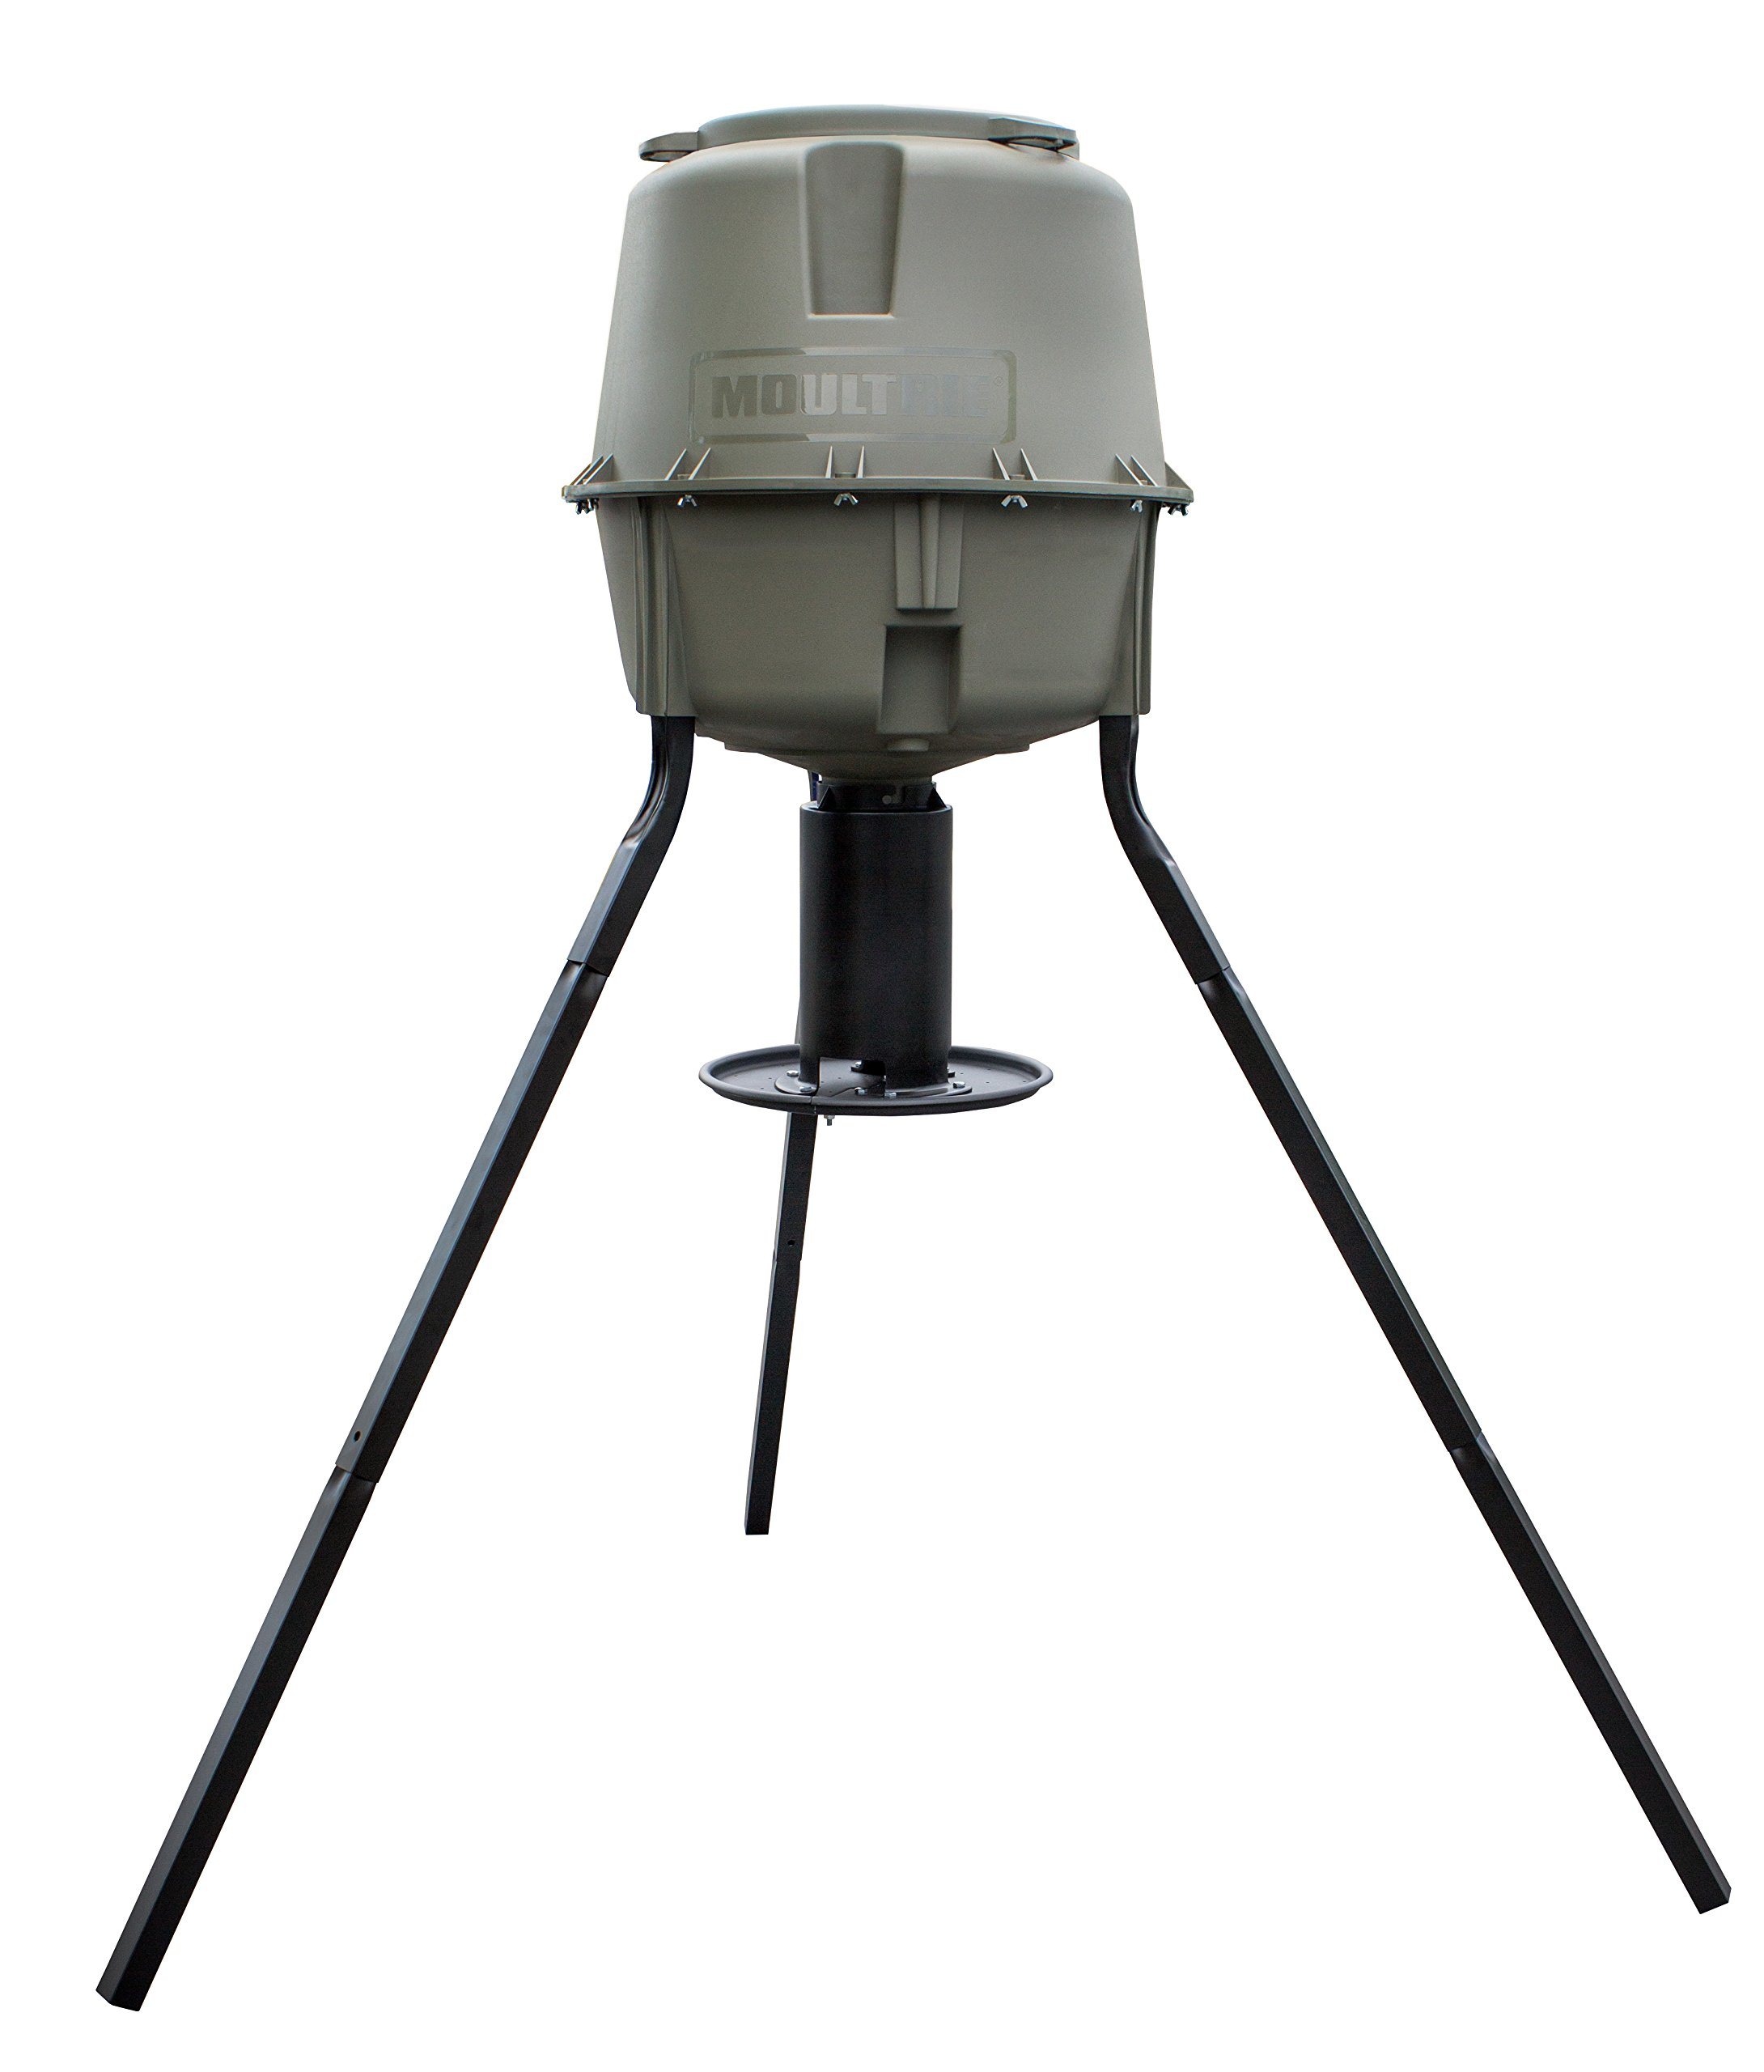 Moultrie Dinner Plate Deer Feeder | 30-Gallon | Gravity Feed |3 Camera Mounts | 200 lb. Capacity